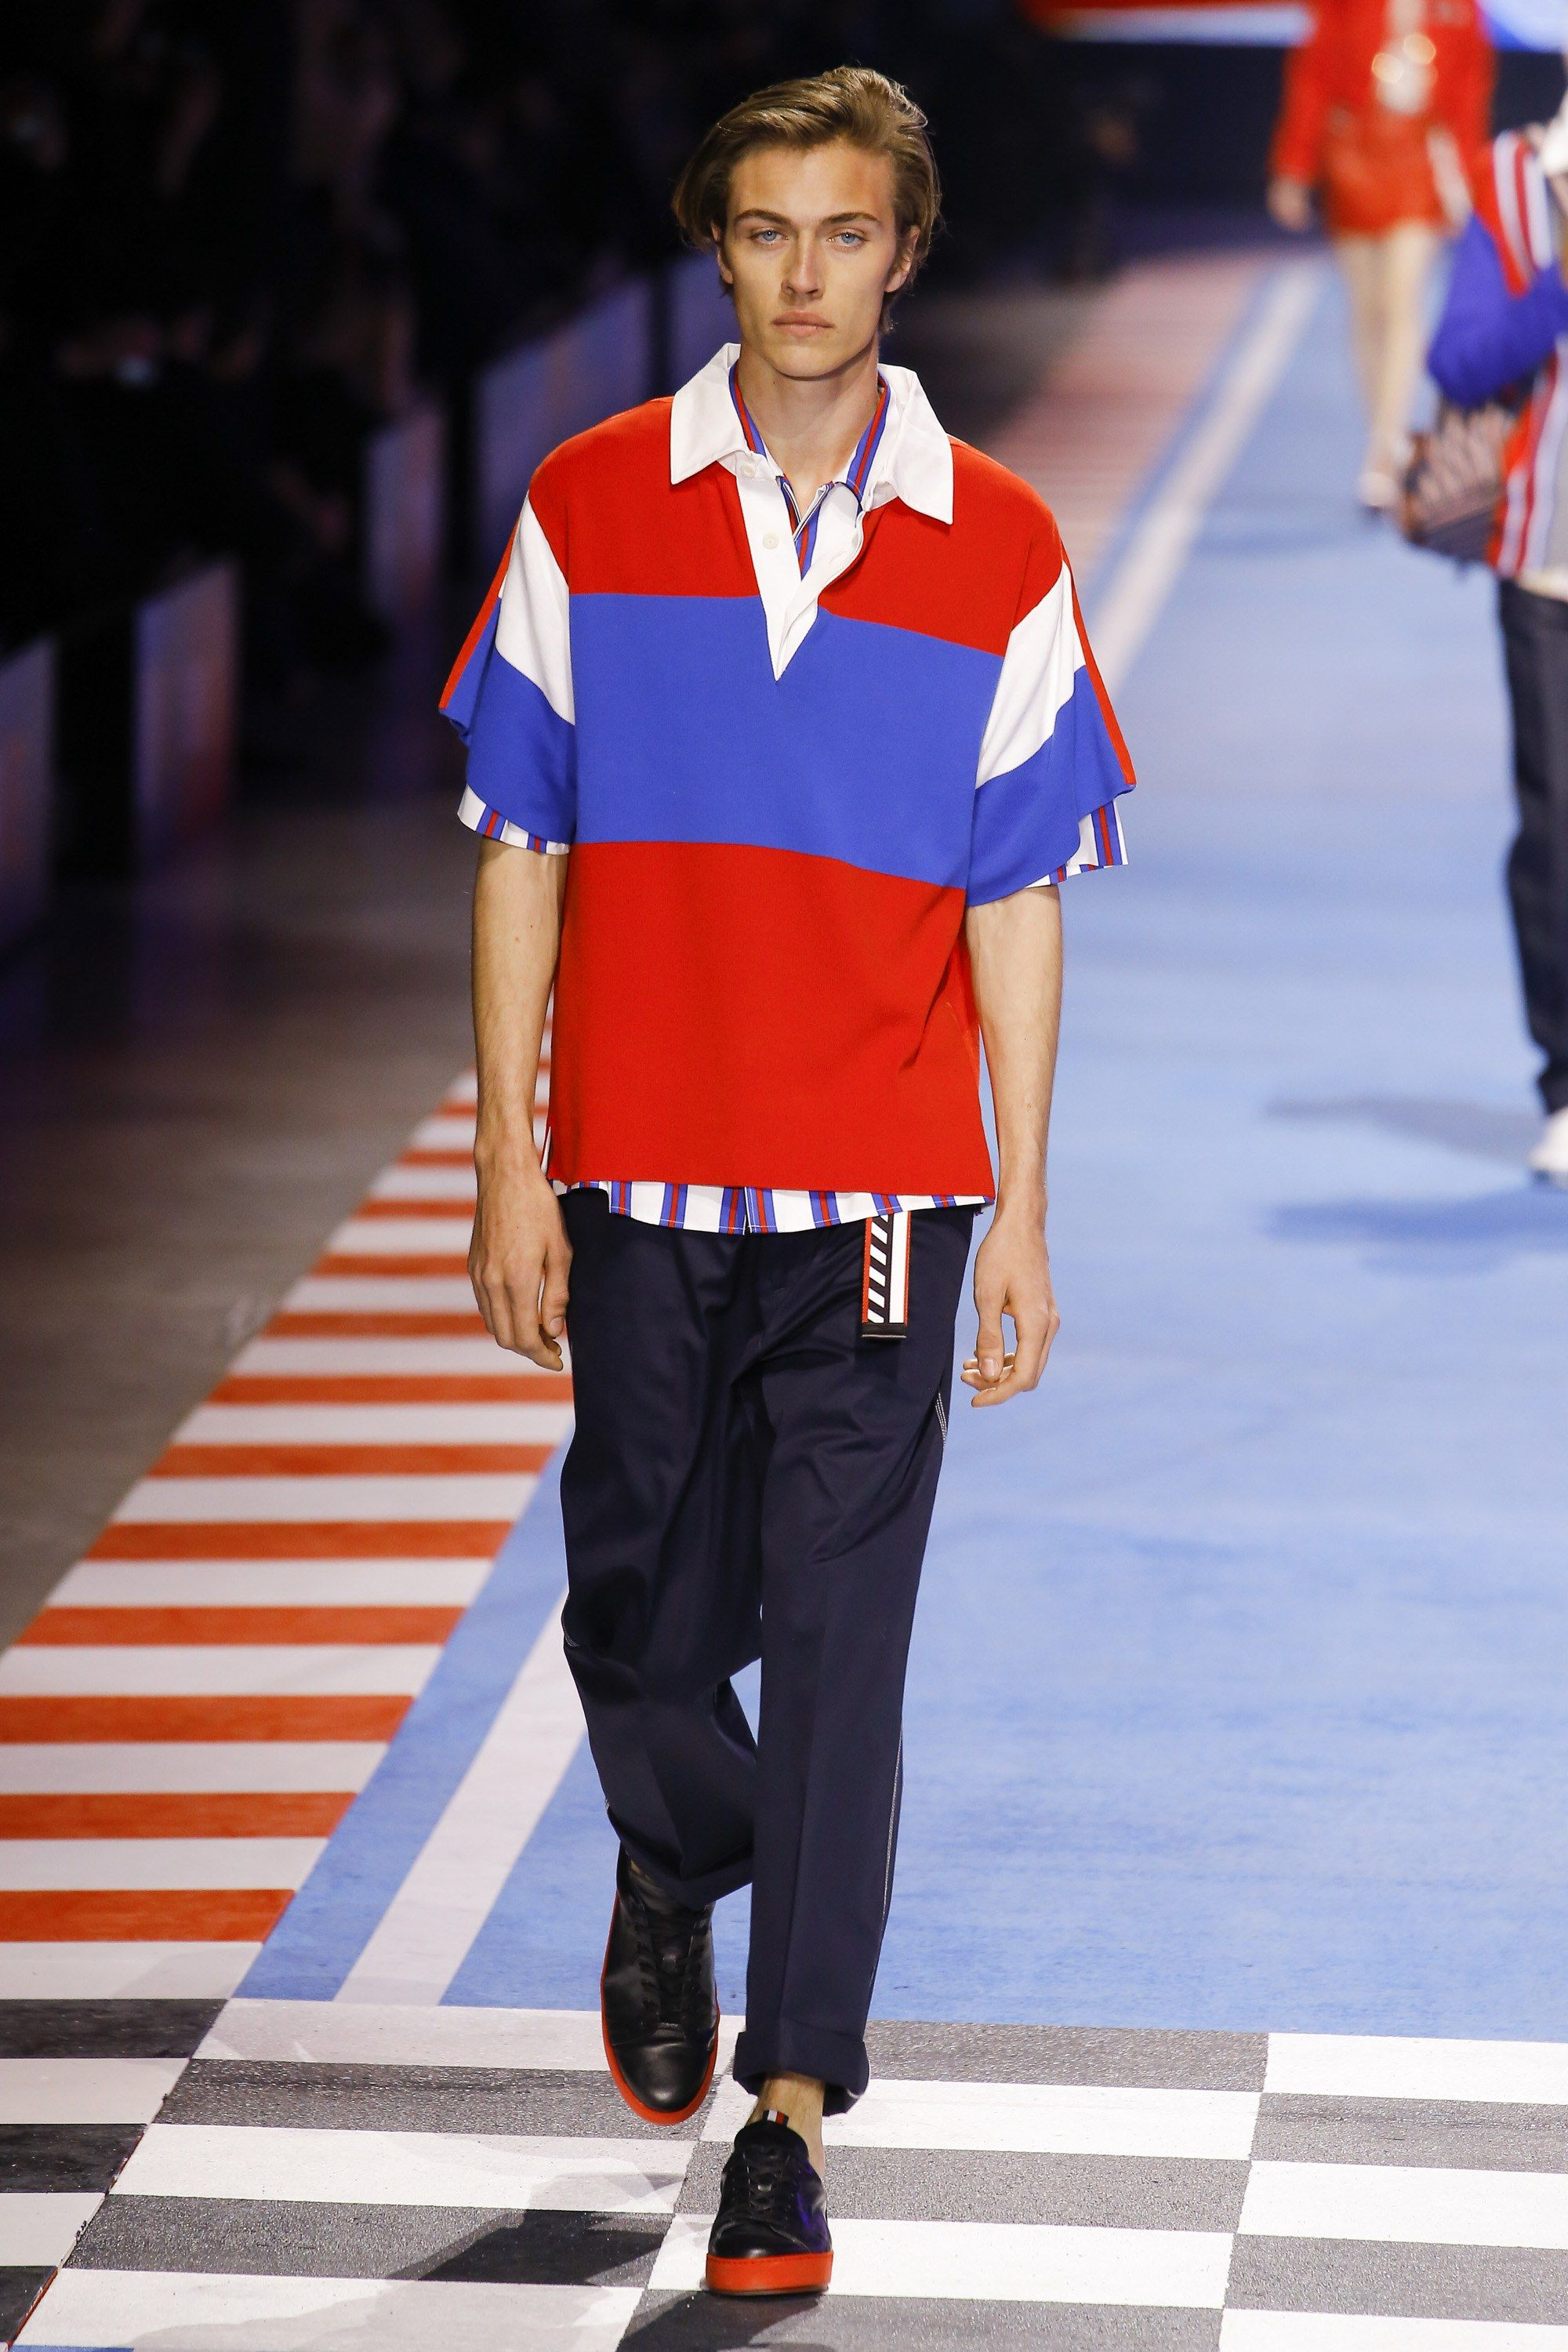 a3b0371f Tommy Hilfiger Spring 2018 Ready-to-Wear Fashion Show | Room 7 (F ...